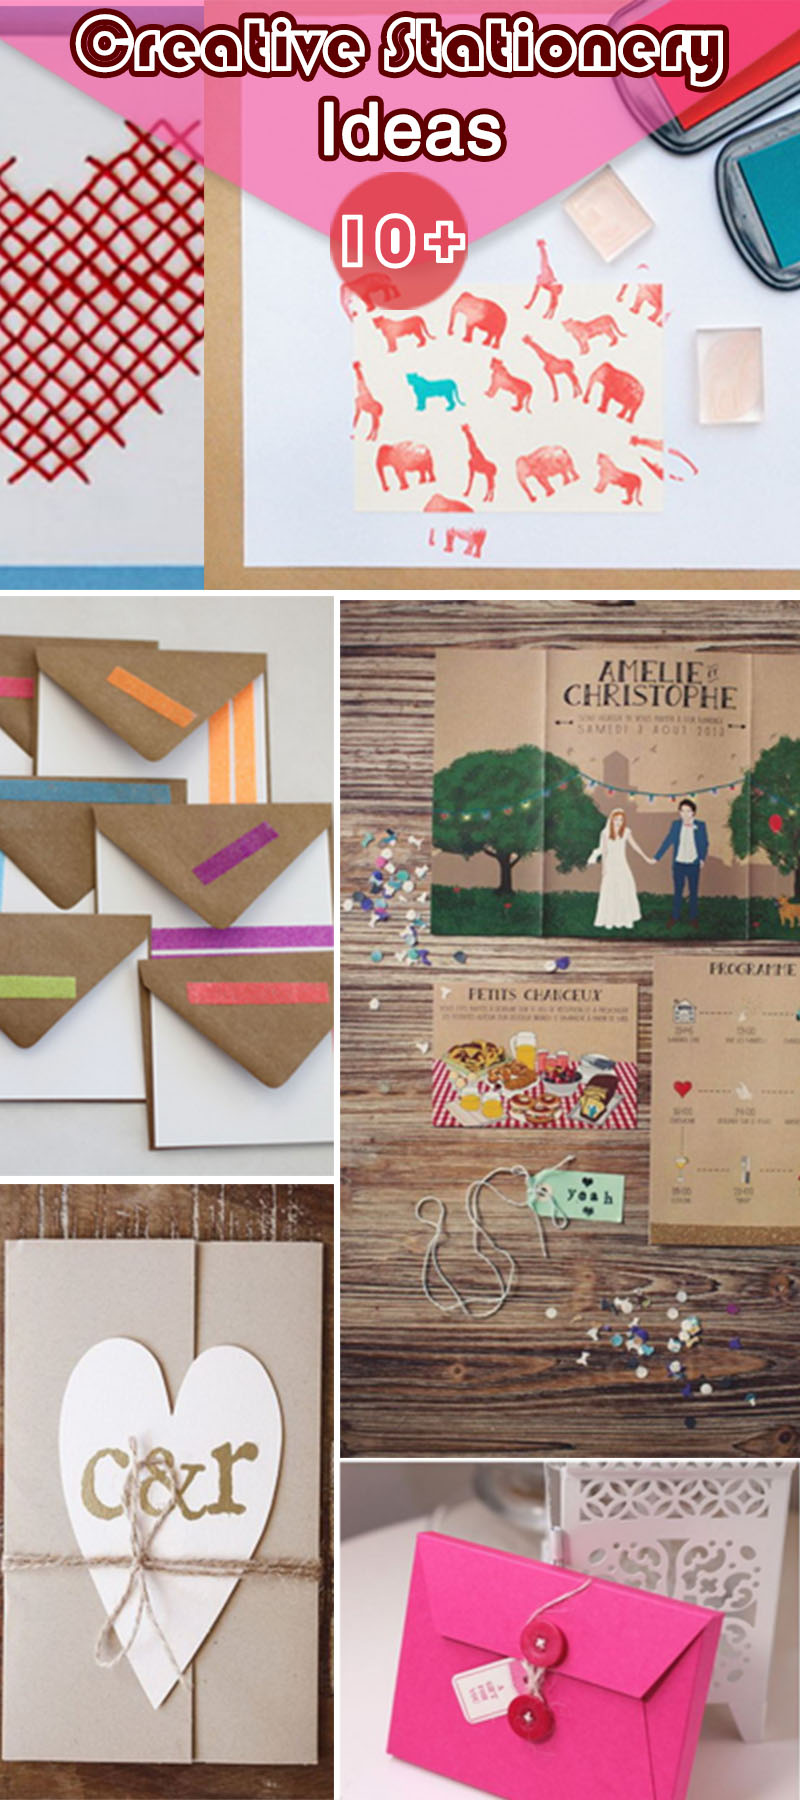 10+ Creative Stationery Ideas - Hative